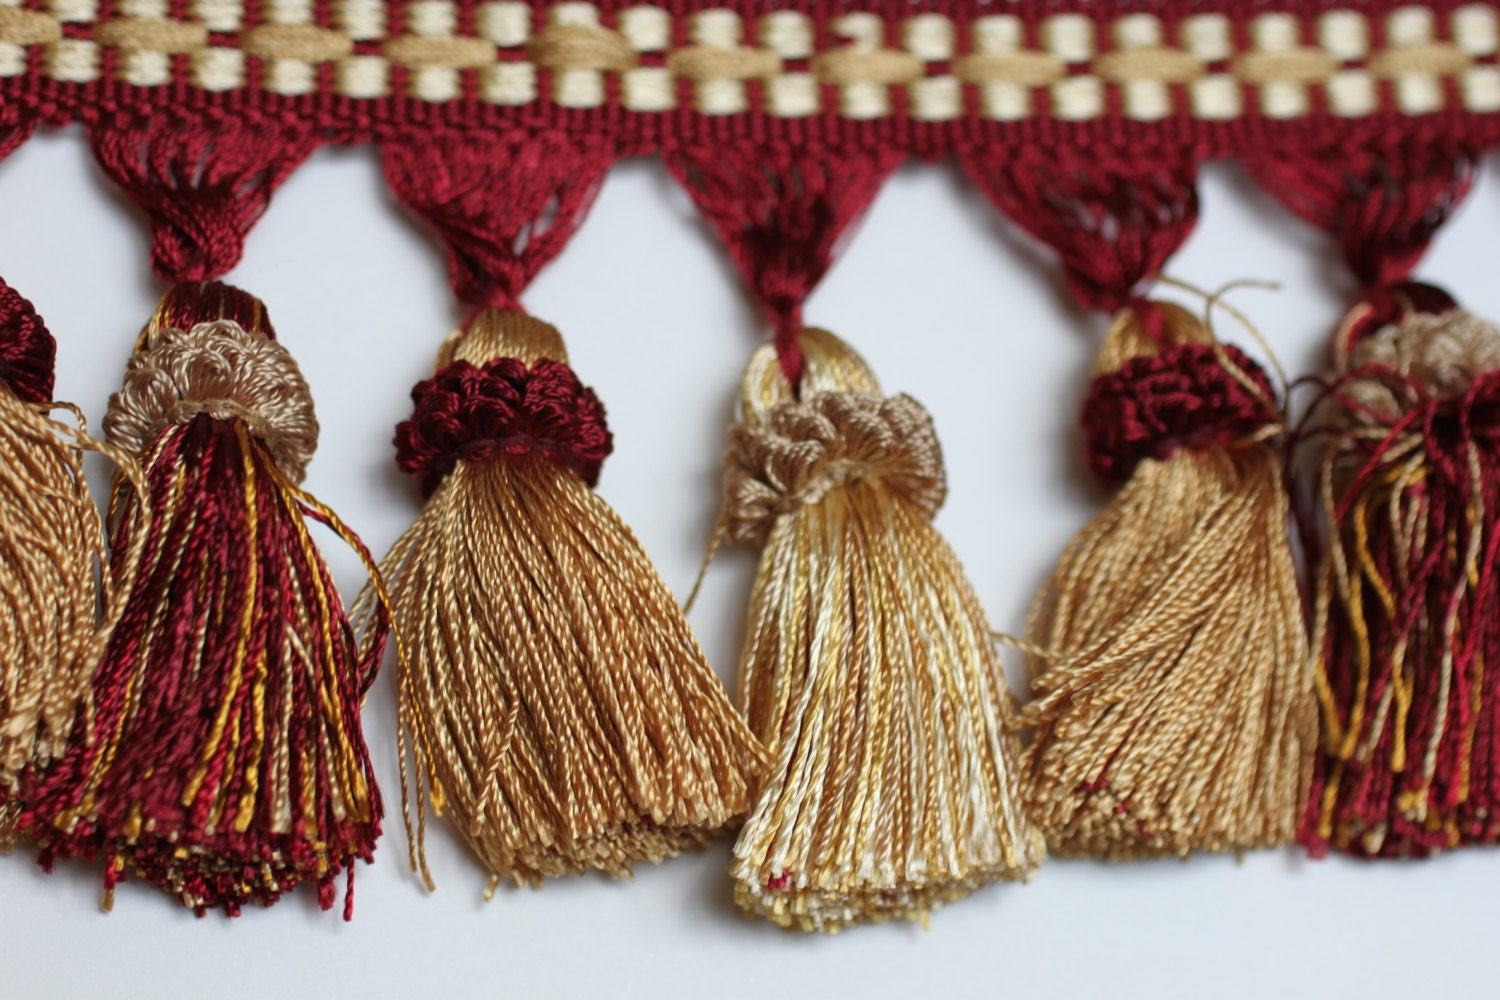 trim tassel fringe burg gold home decor tassels by fabricbuzz home accessory leather leather tassel brown leather